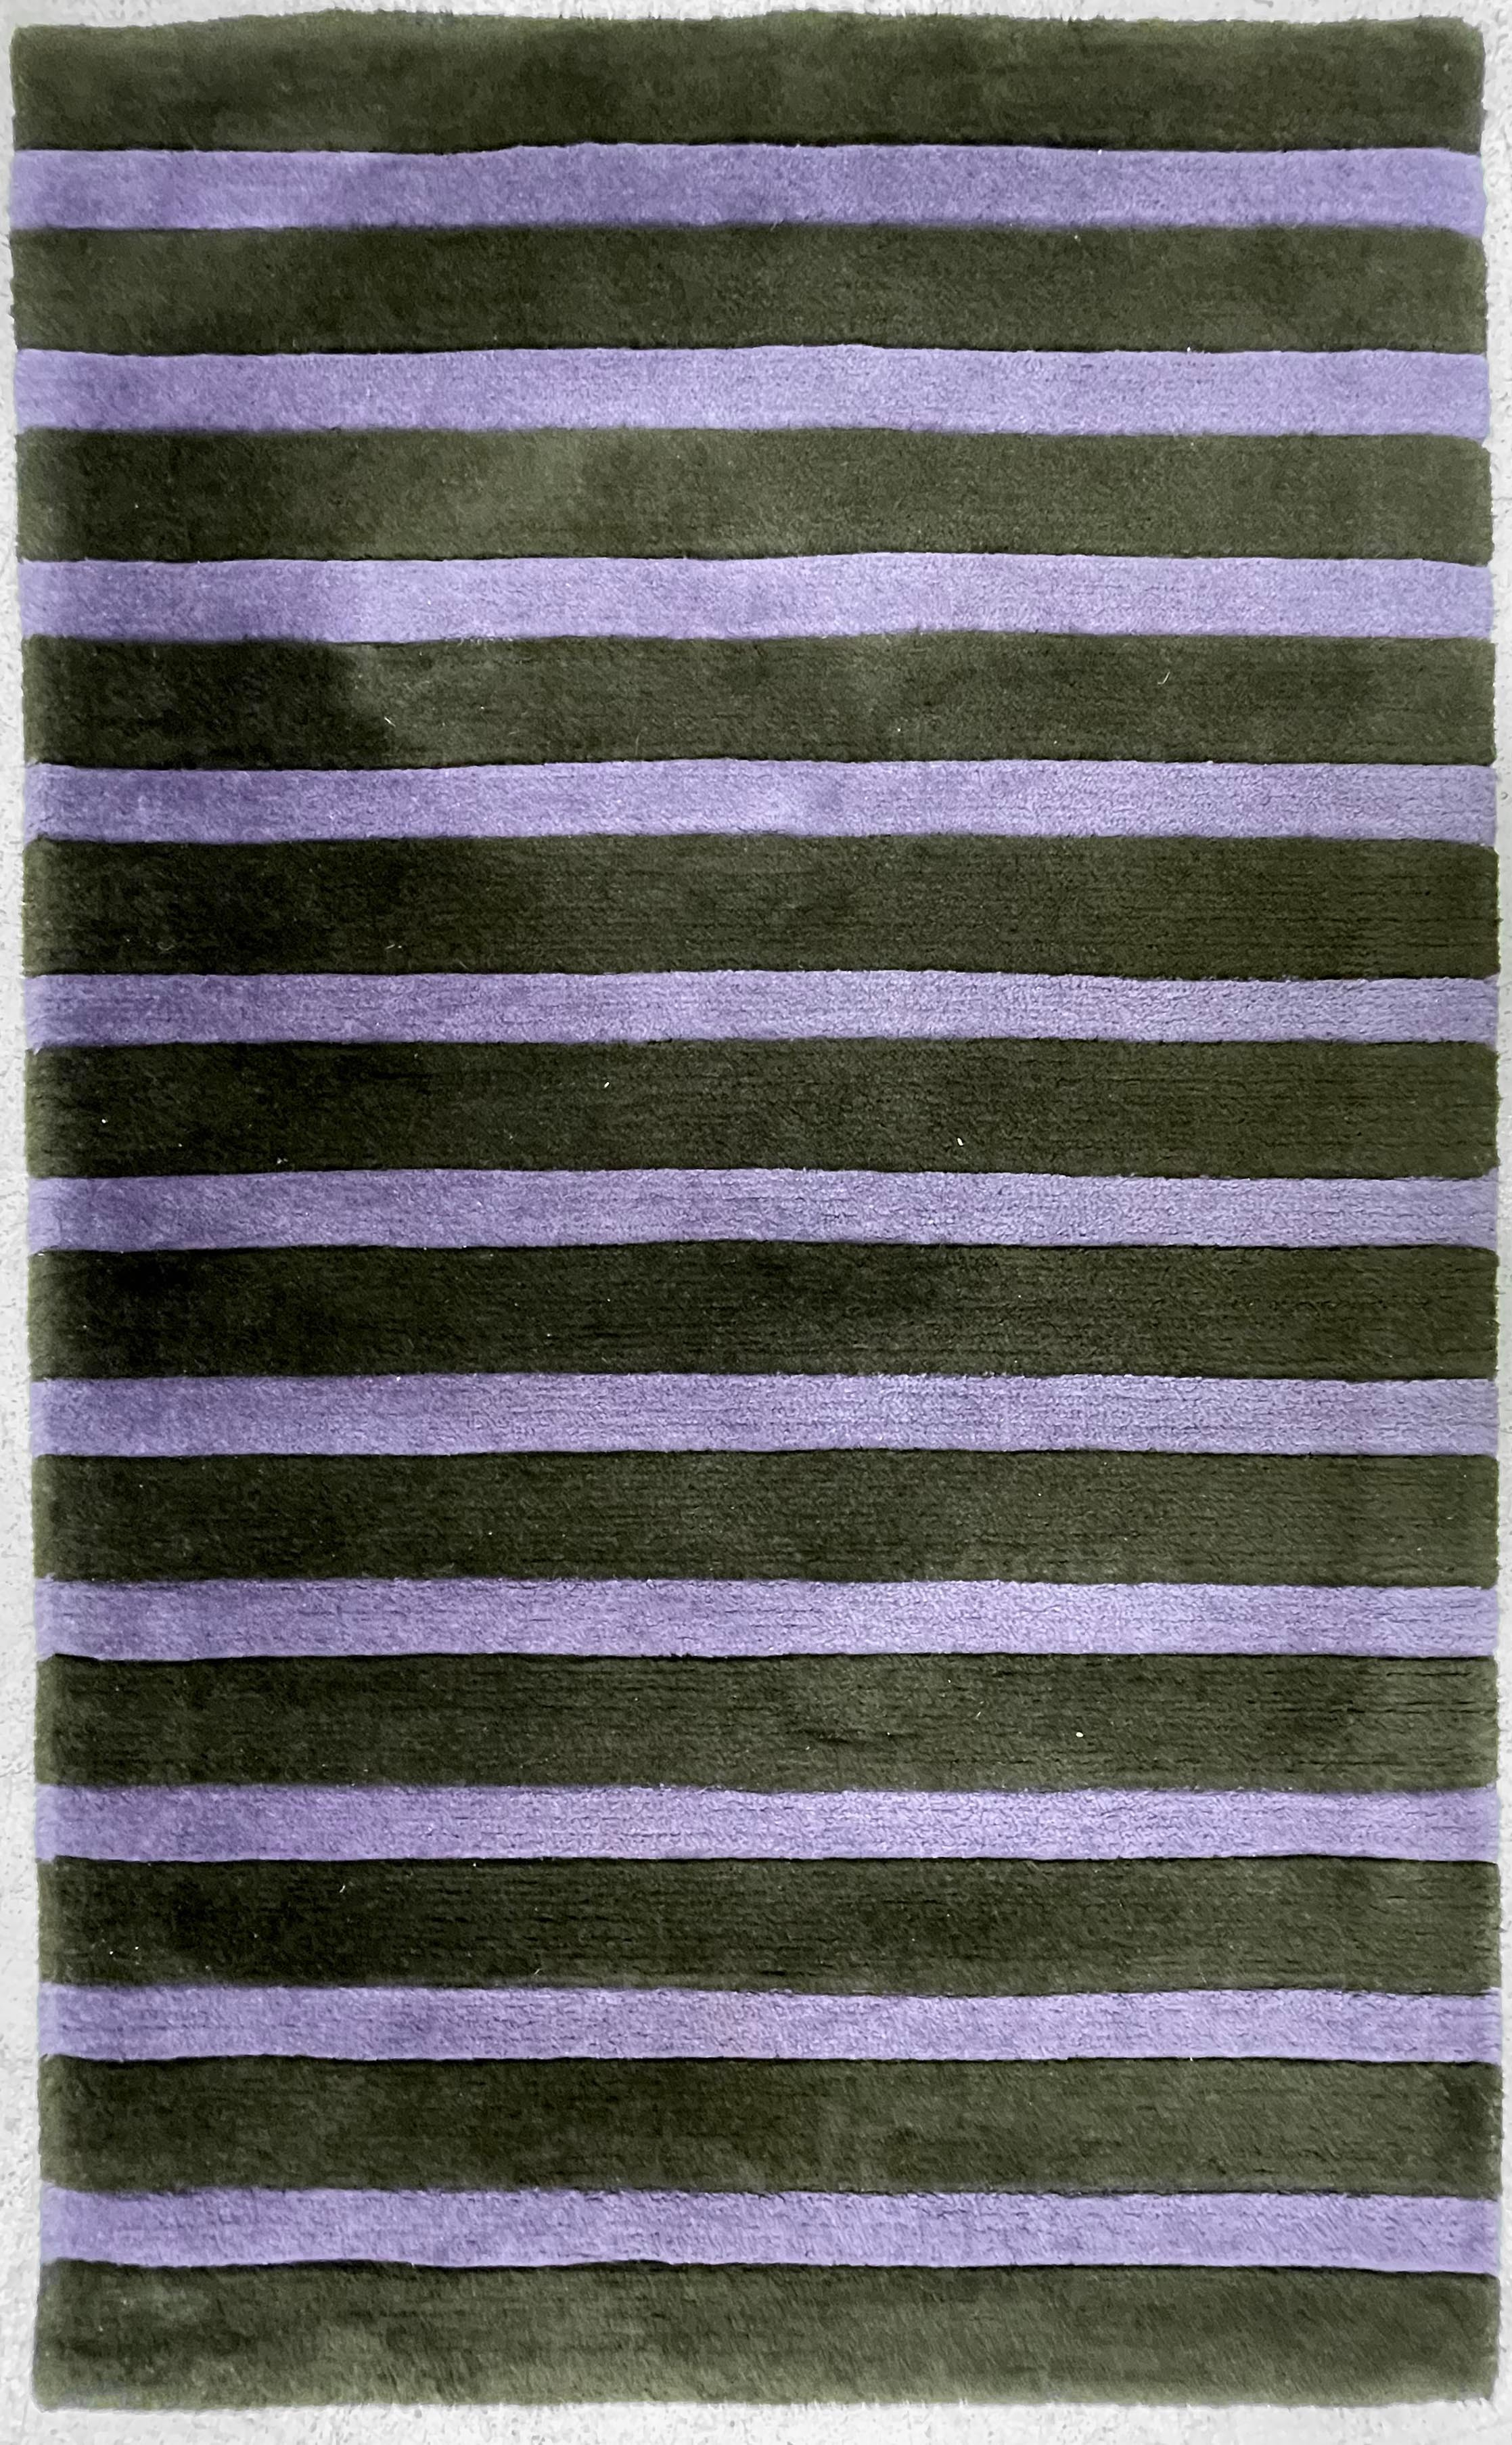 """Chinese Tai Ping purple and black striped rug, 59"""" x 36"""" approx"""